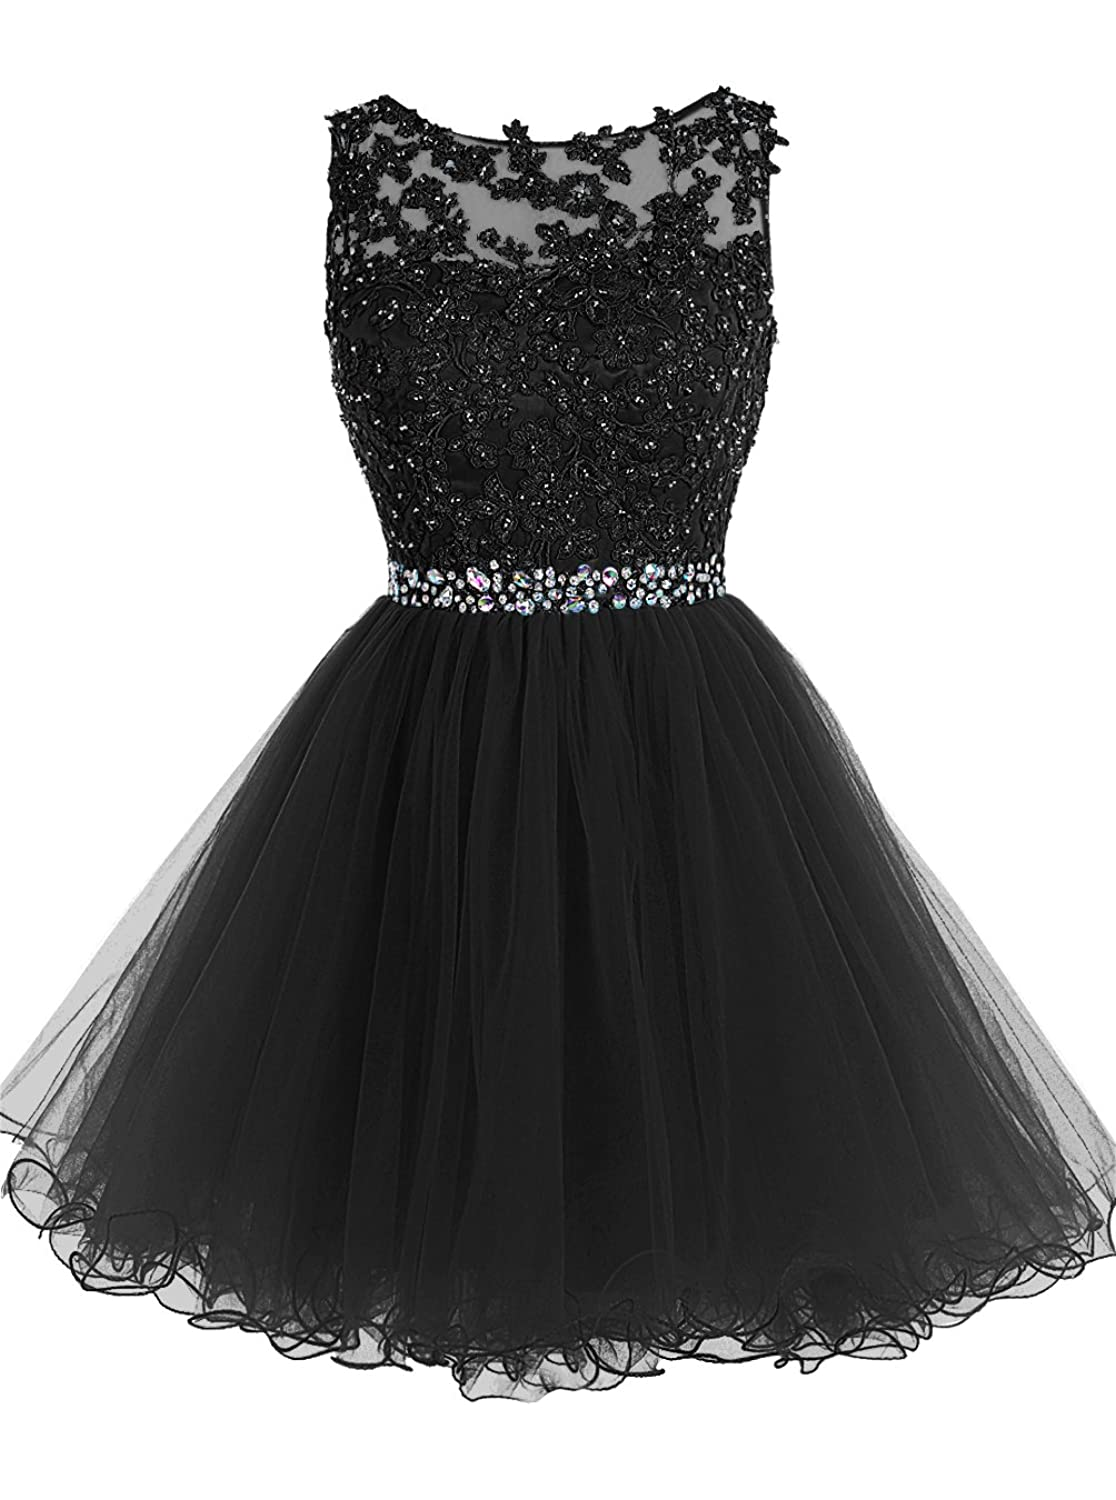 Amazon.com: Tideclothes ALAGIRLS Short Beaded Prom Dress Tulle ...